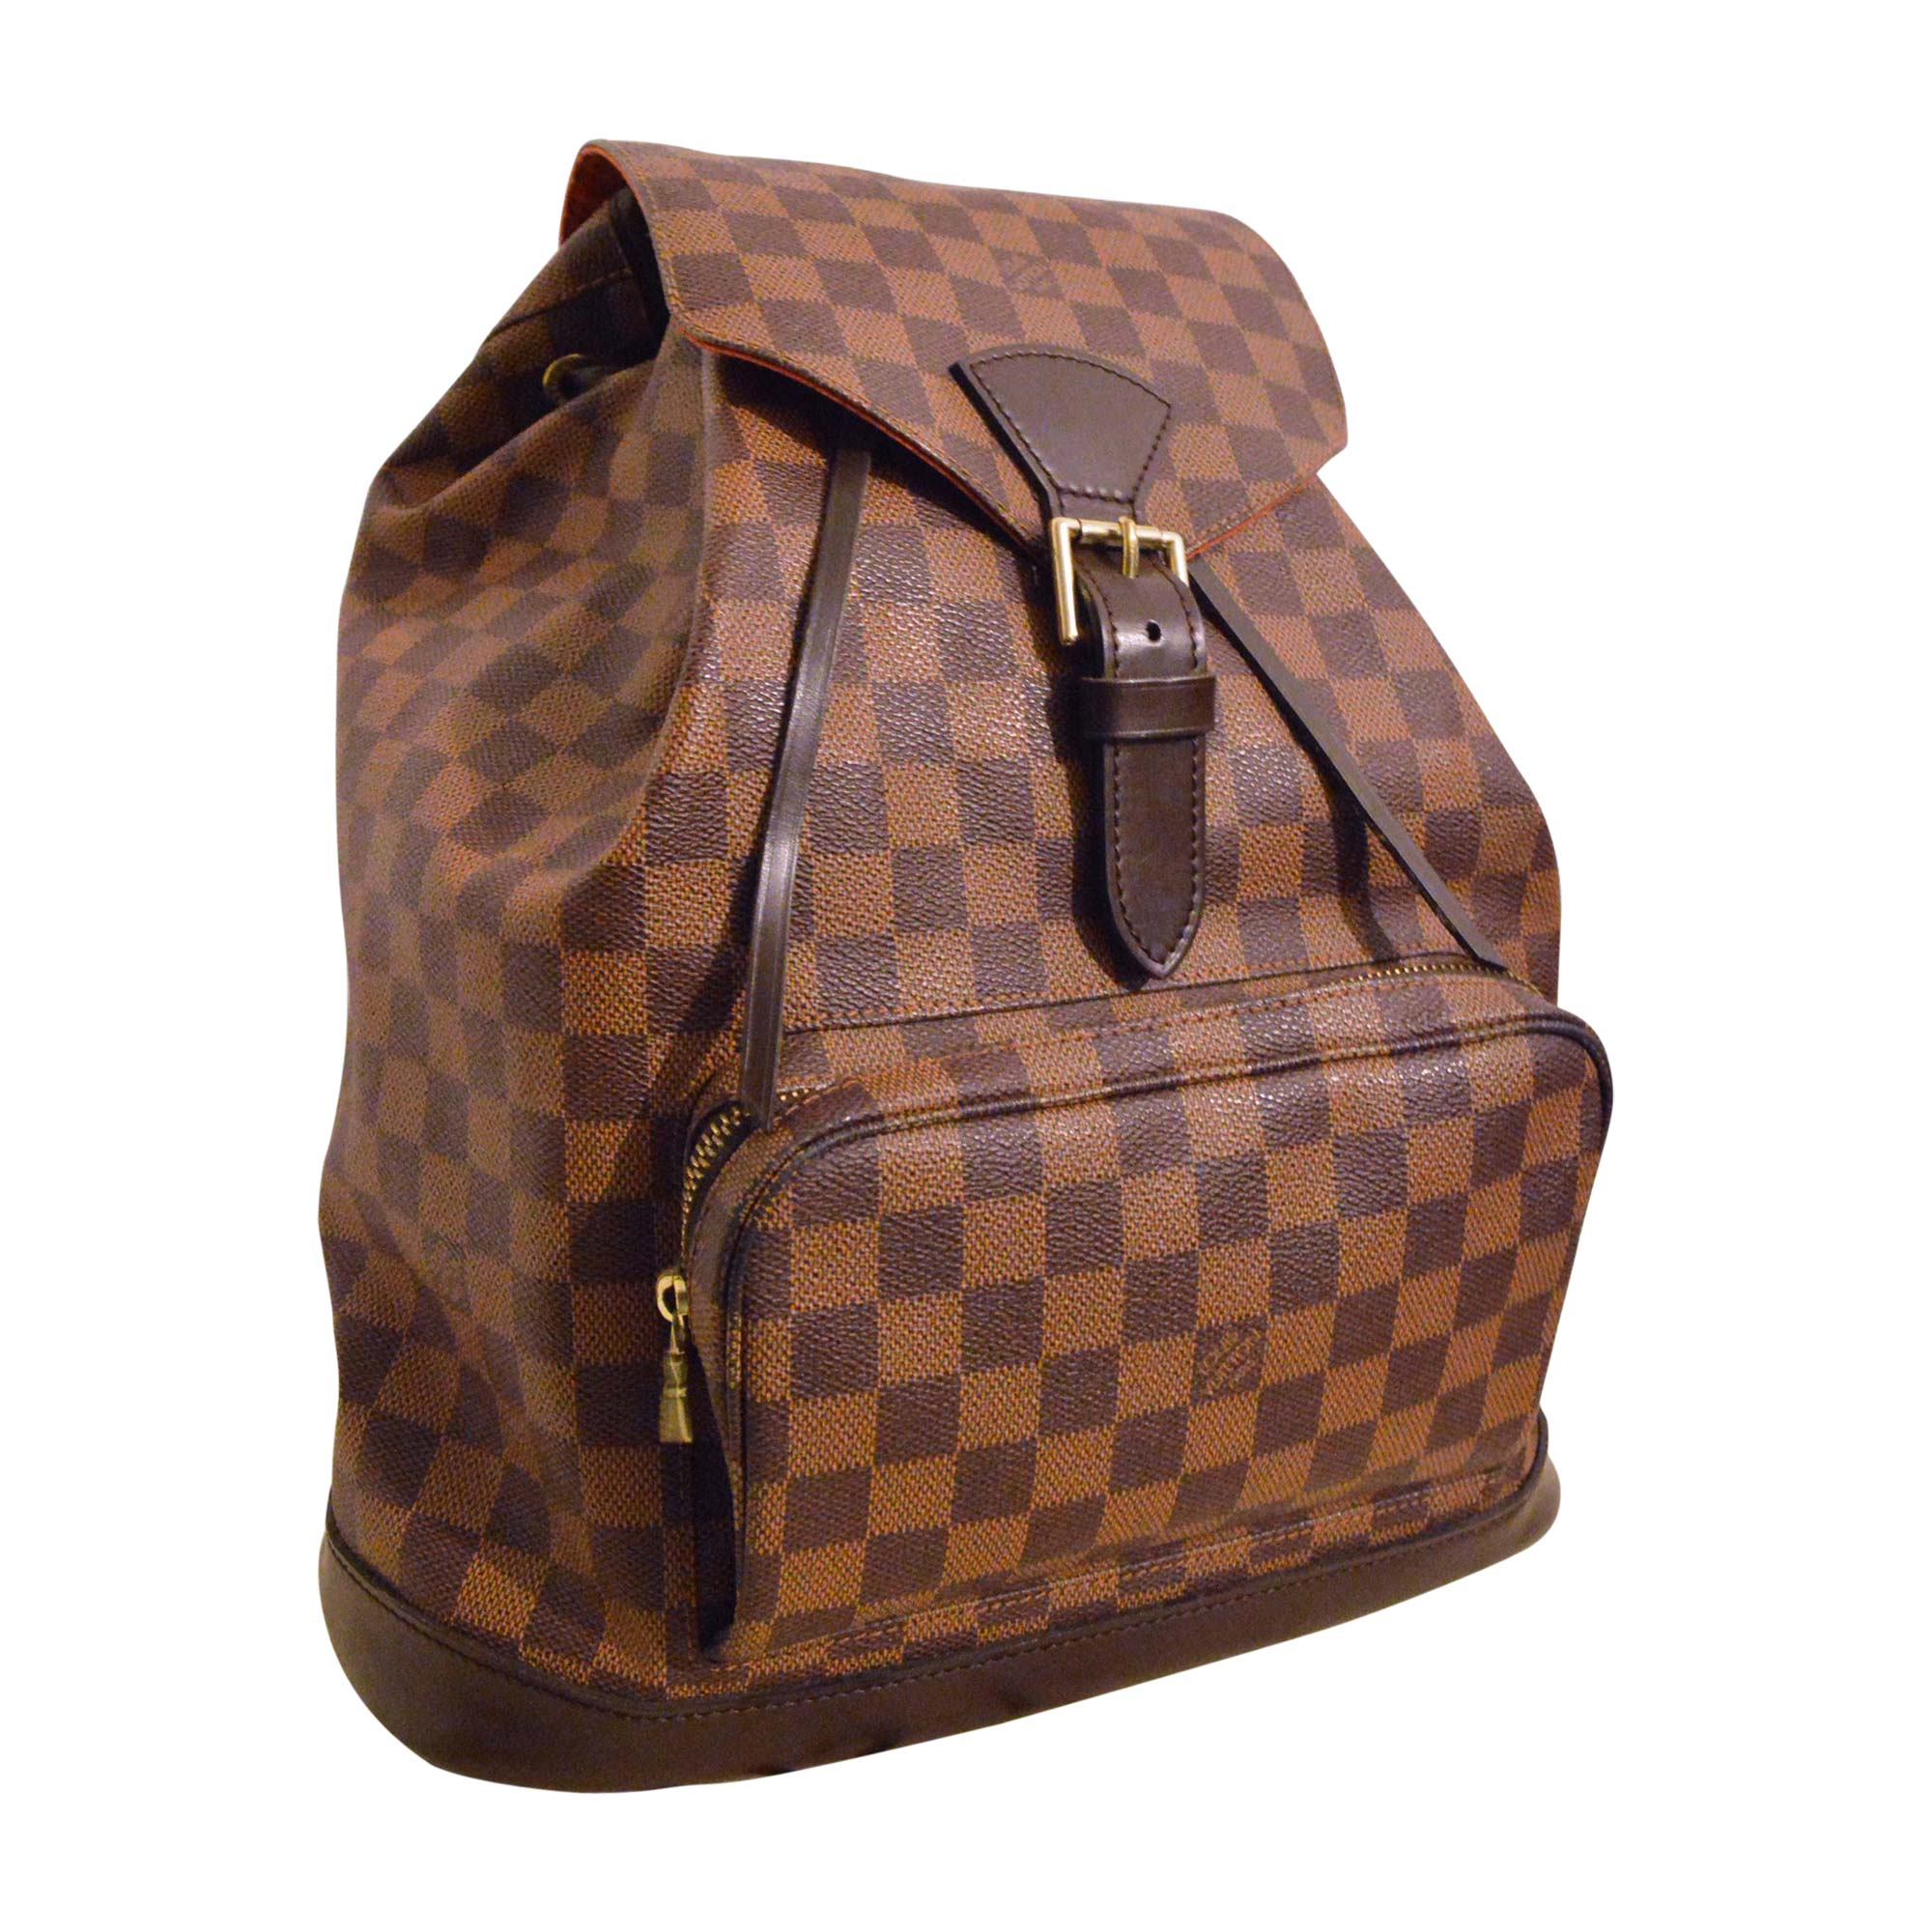 Zaino LOUIS VUITTON marrone - 6991330 4e25236b68c